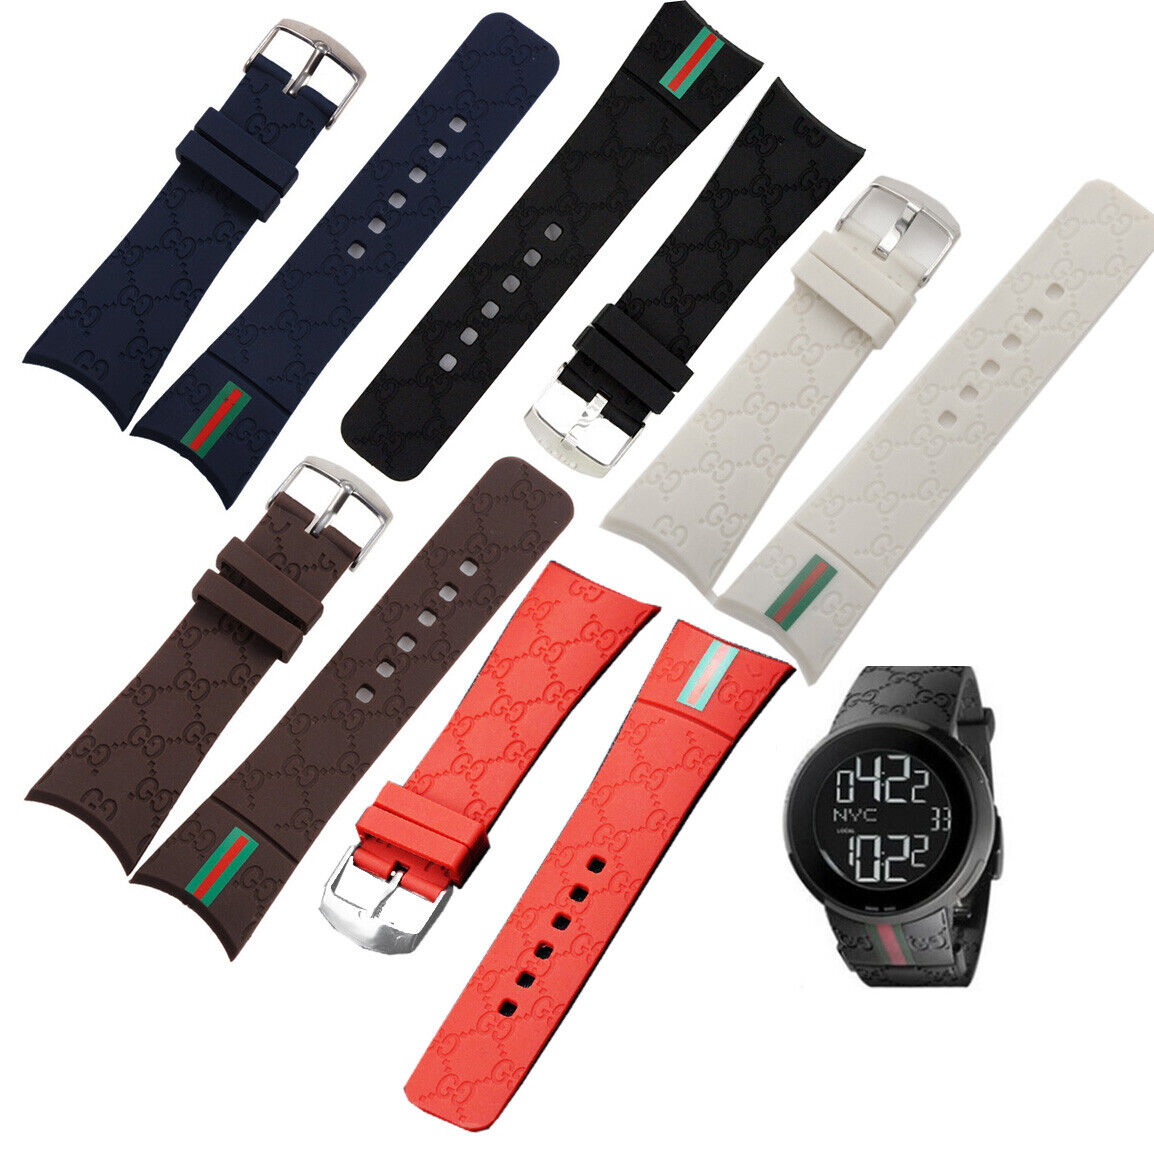 26mm rubber replacement watch band strap